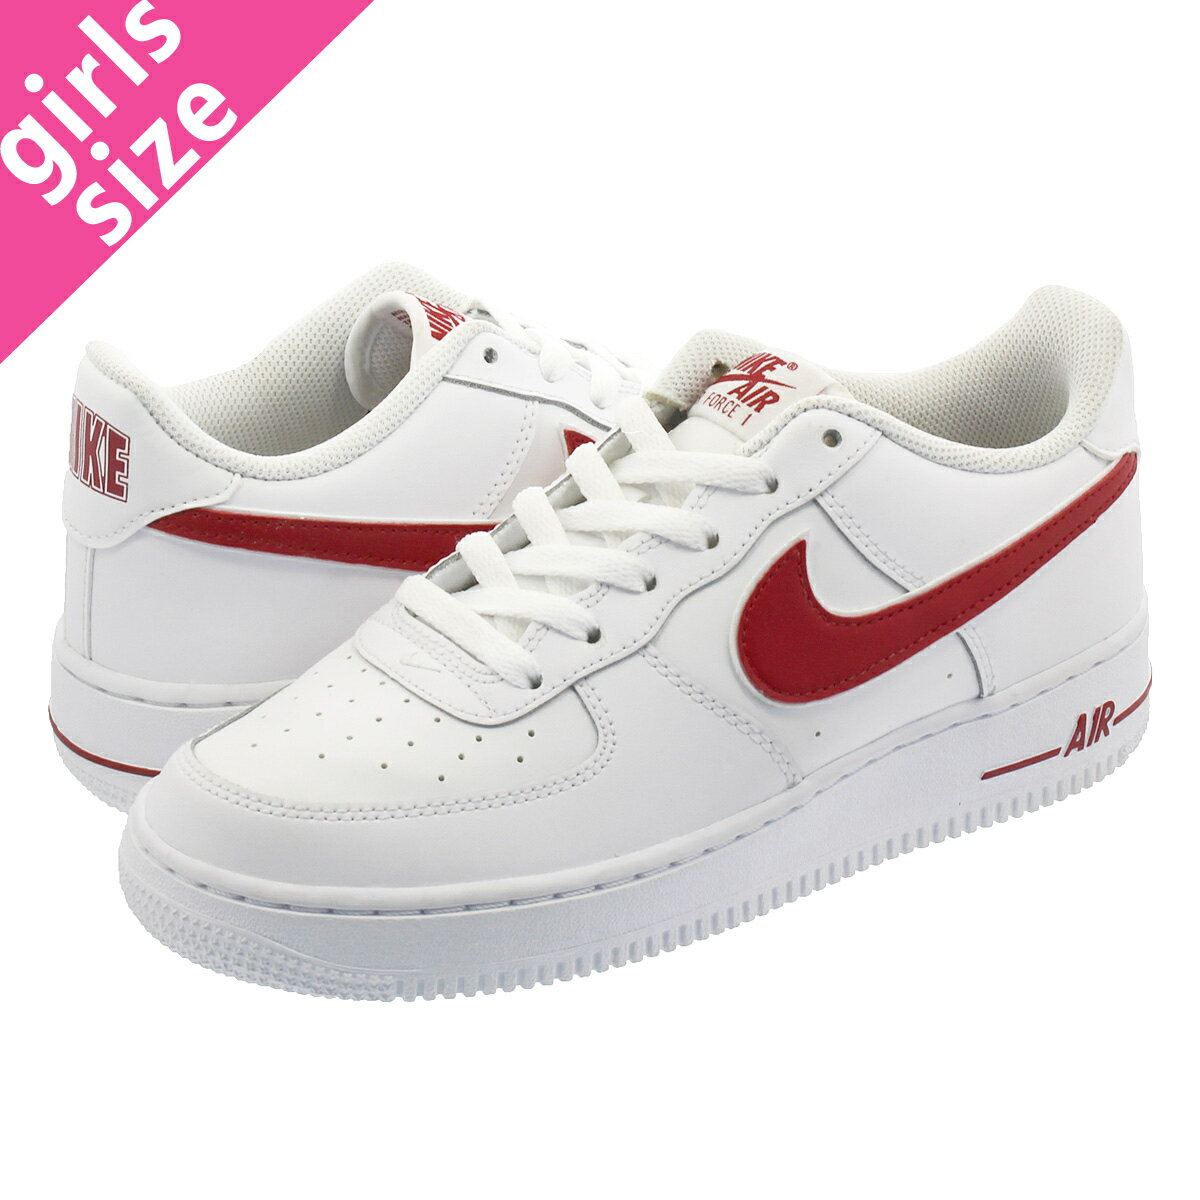 nike AIR FORCE 1 3 (GS) WHITEGYM RED bei